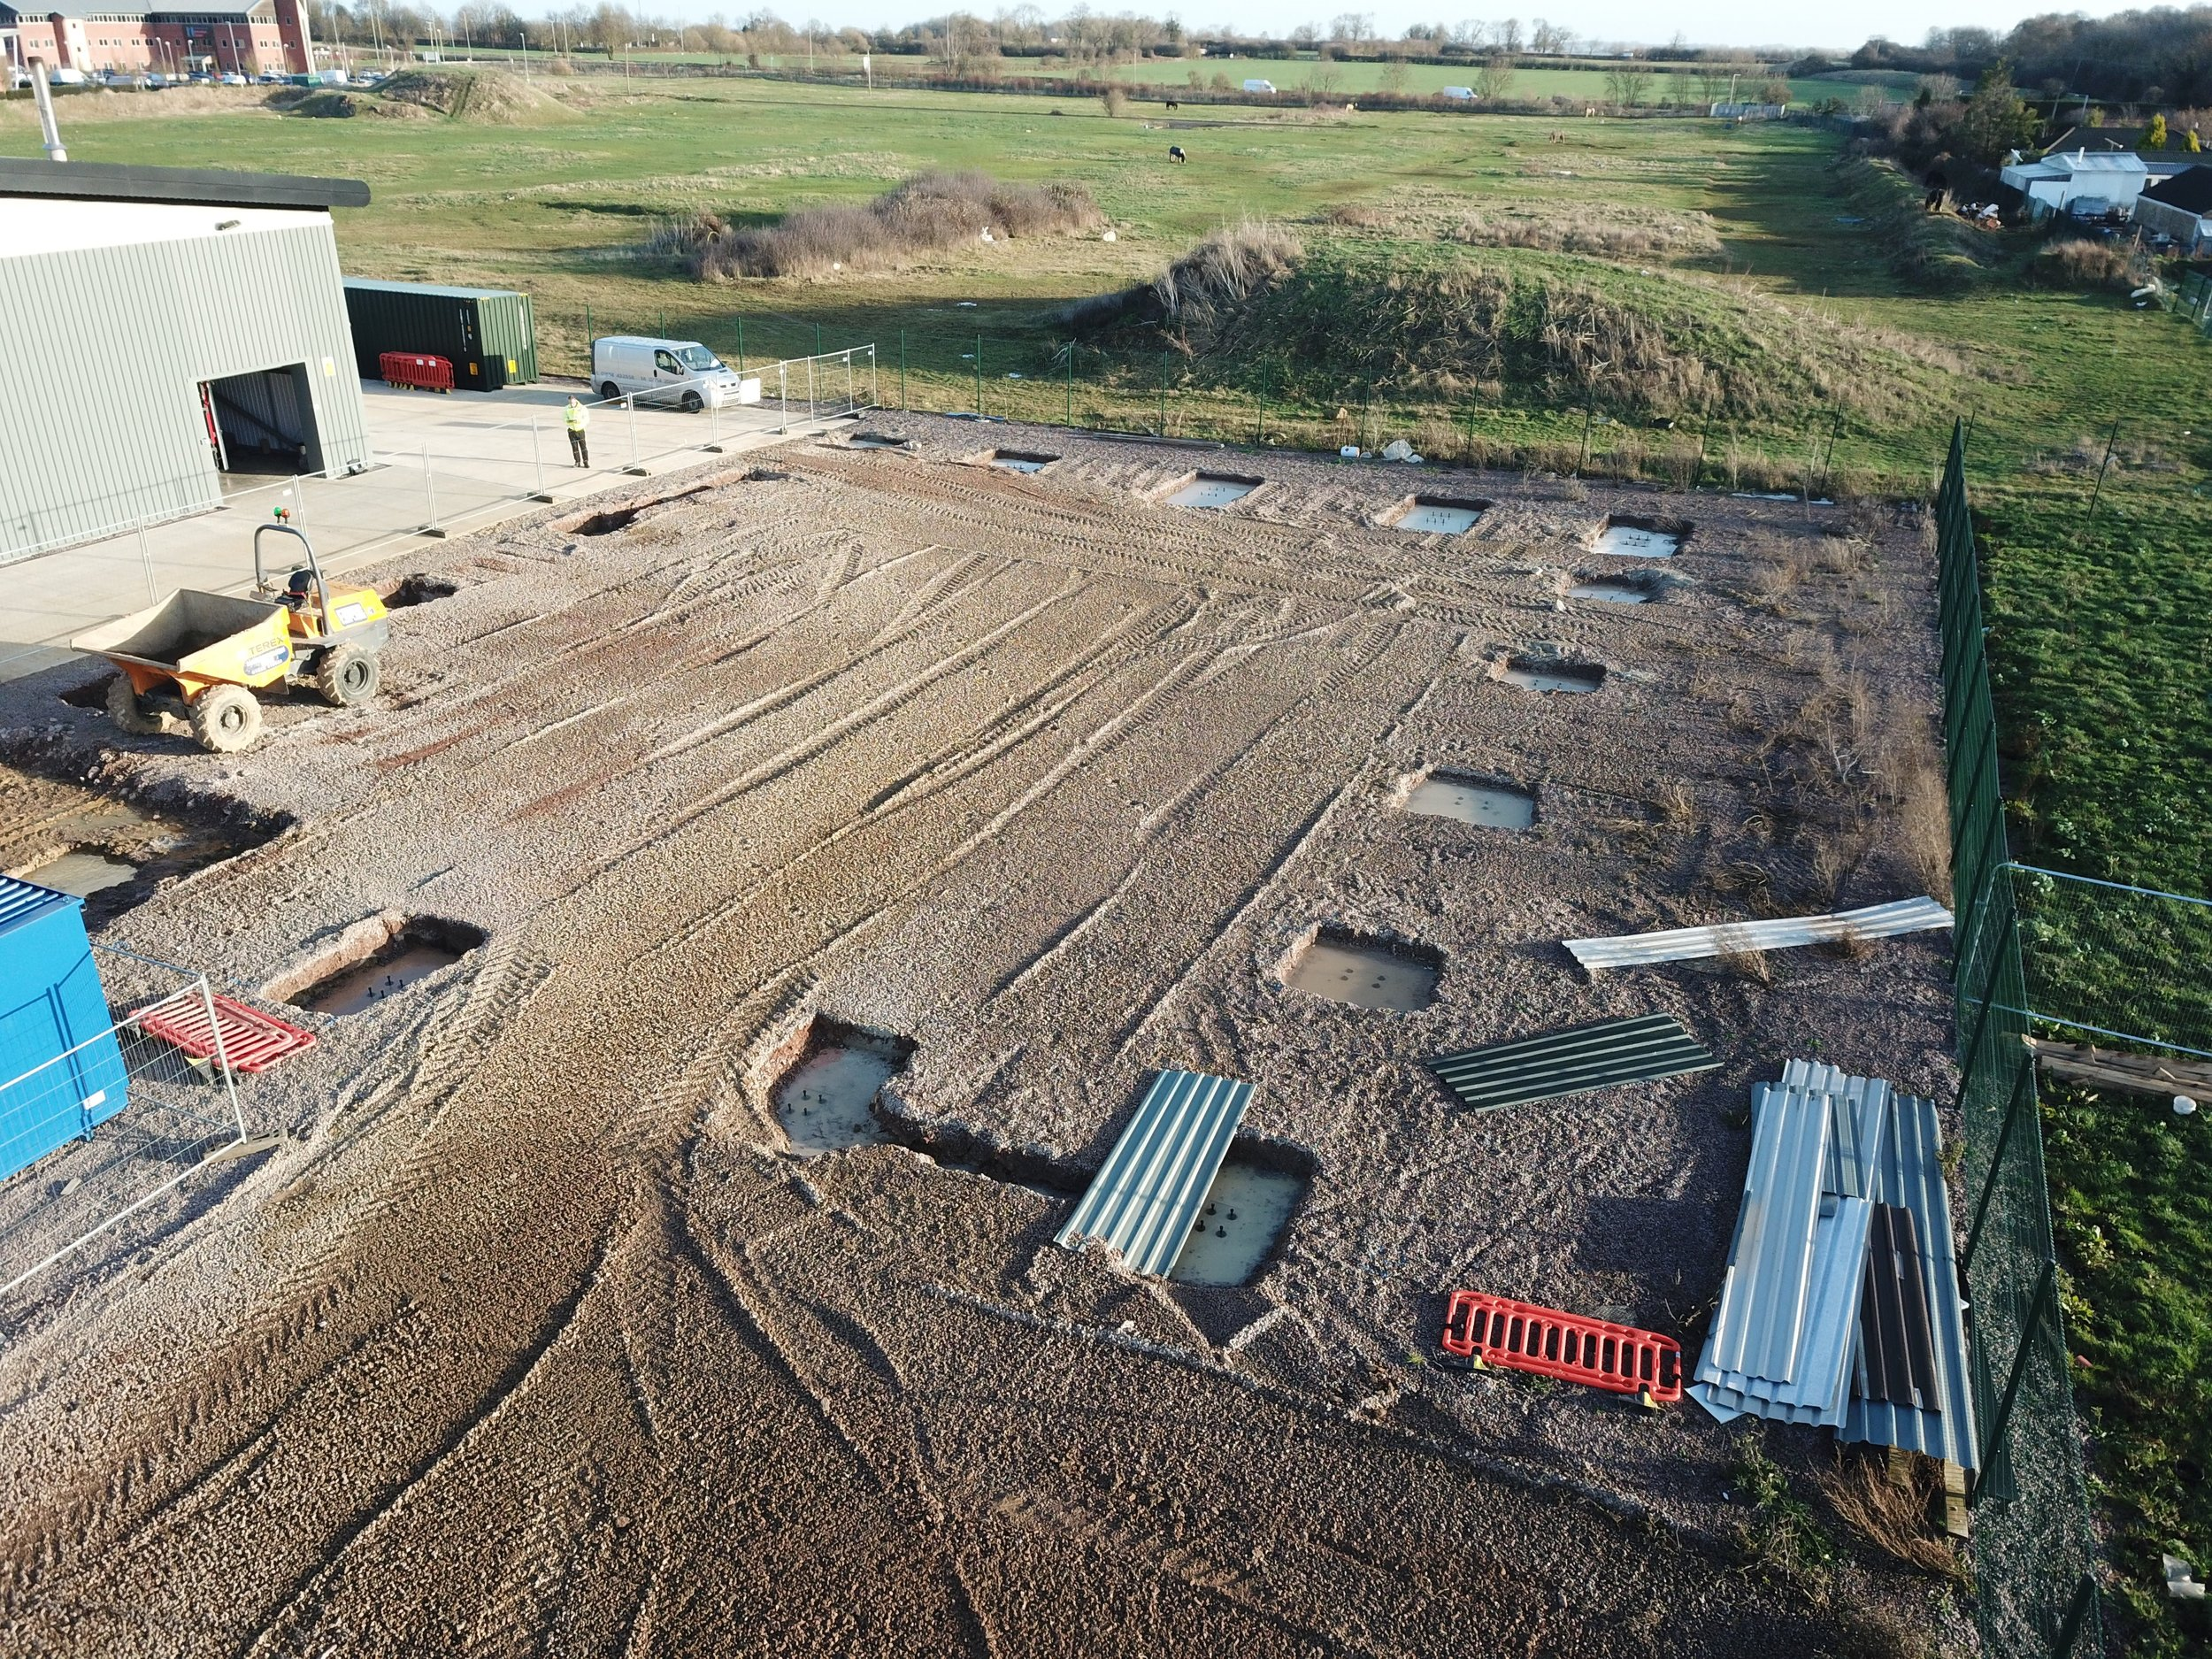 Thorpes New Storage - Overview